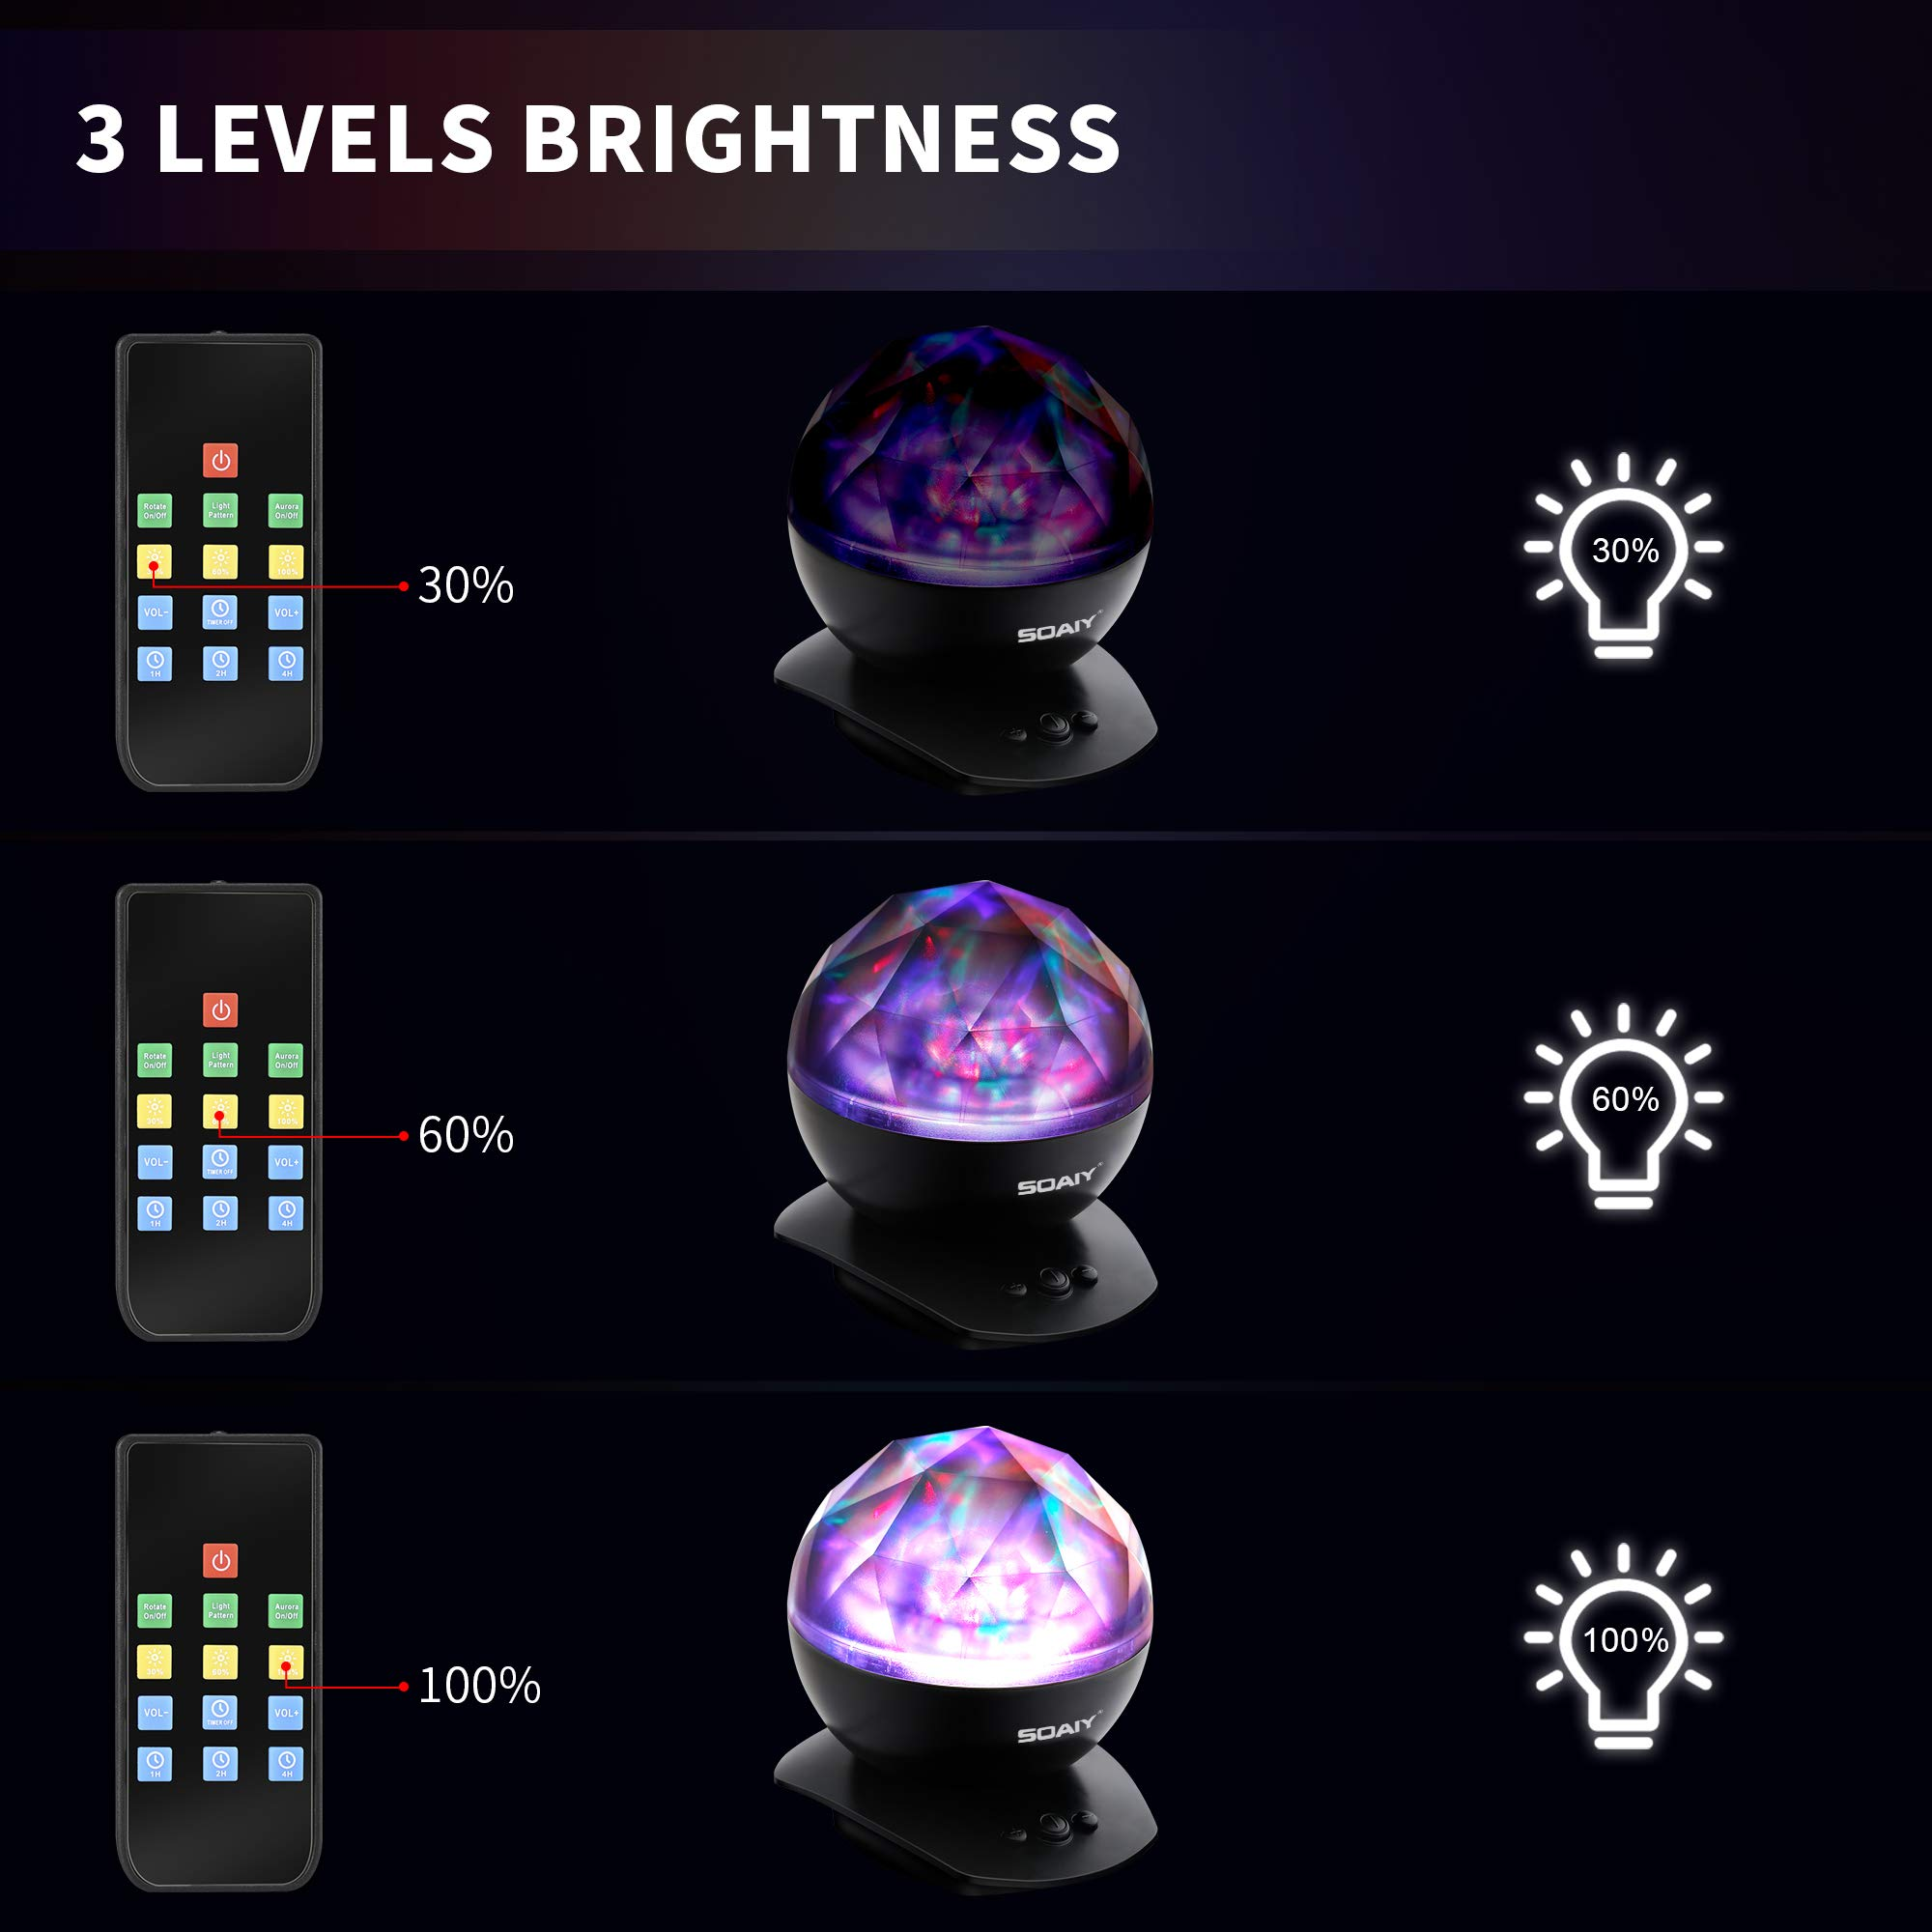 [Upgraded Version] SOAIY Soothing Aurora LED Night Light Projector with UL Certified Adapter,Timer,Remote,Music Speaker,8 Lighting Modes,Relaxing Light Show,Mood Lamp for Baby Kids, Adults,Living Room by SOAIY (Image #7)